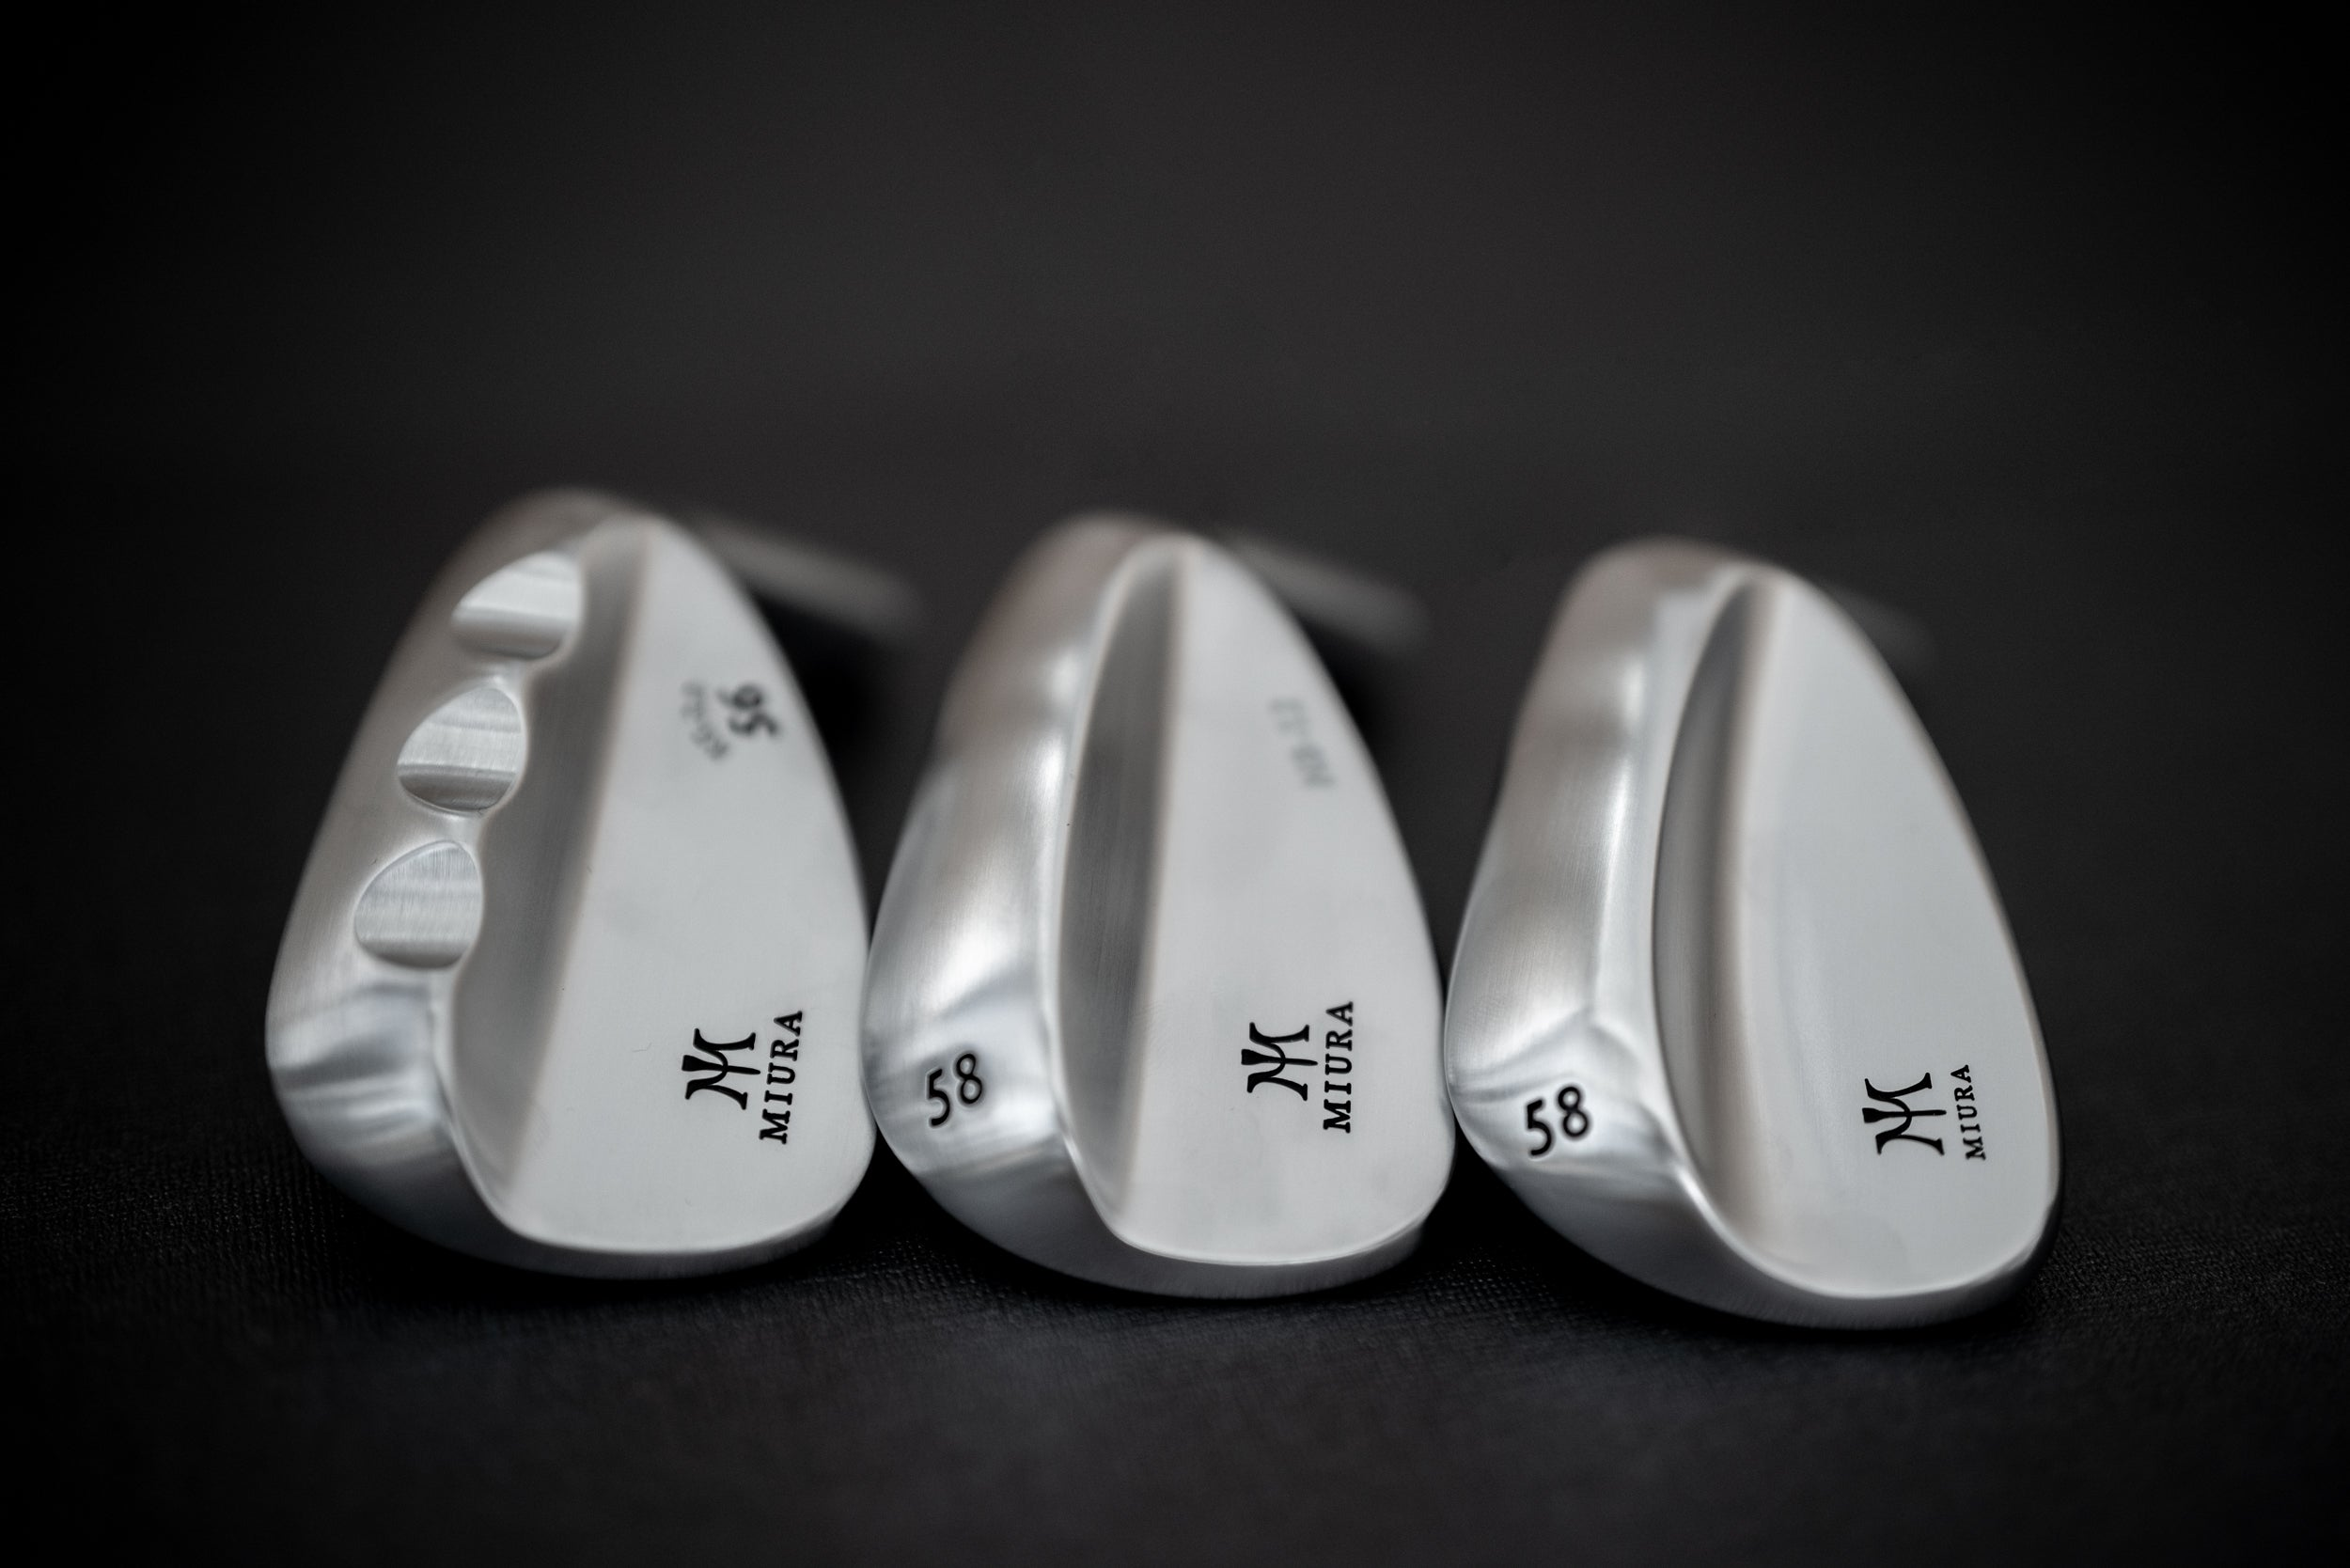 Where to Find Miura Wedge Reviews